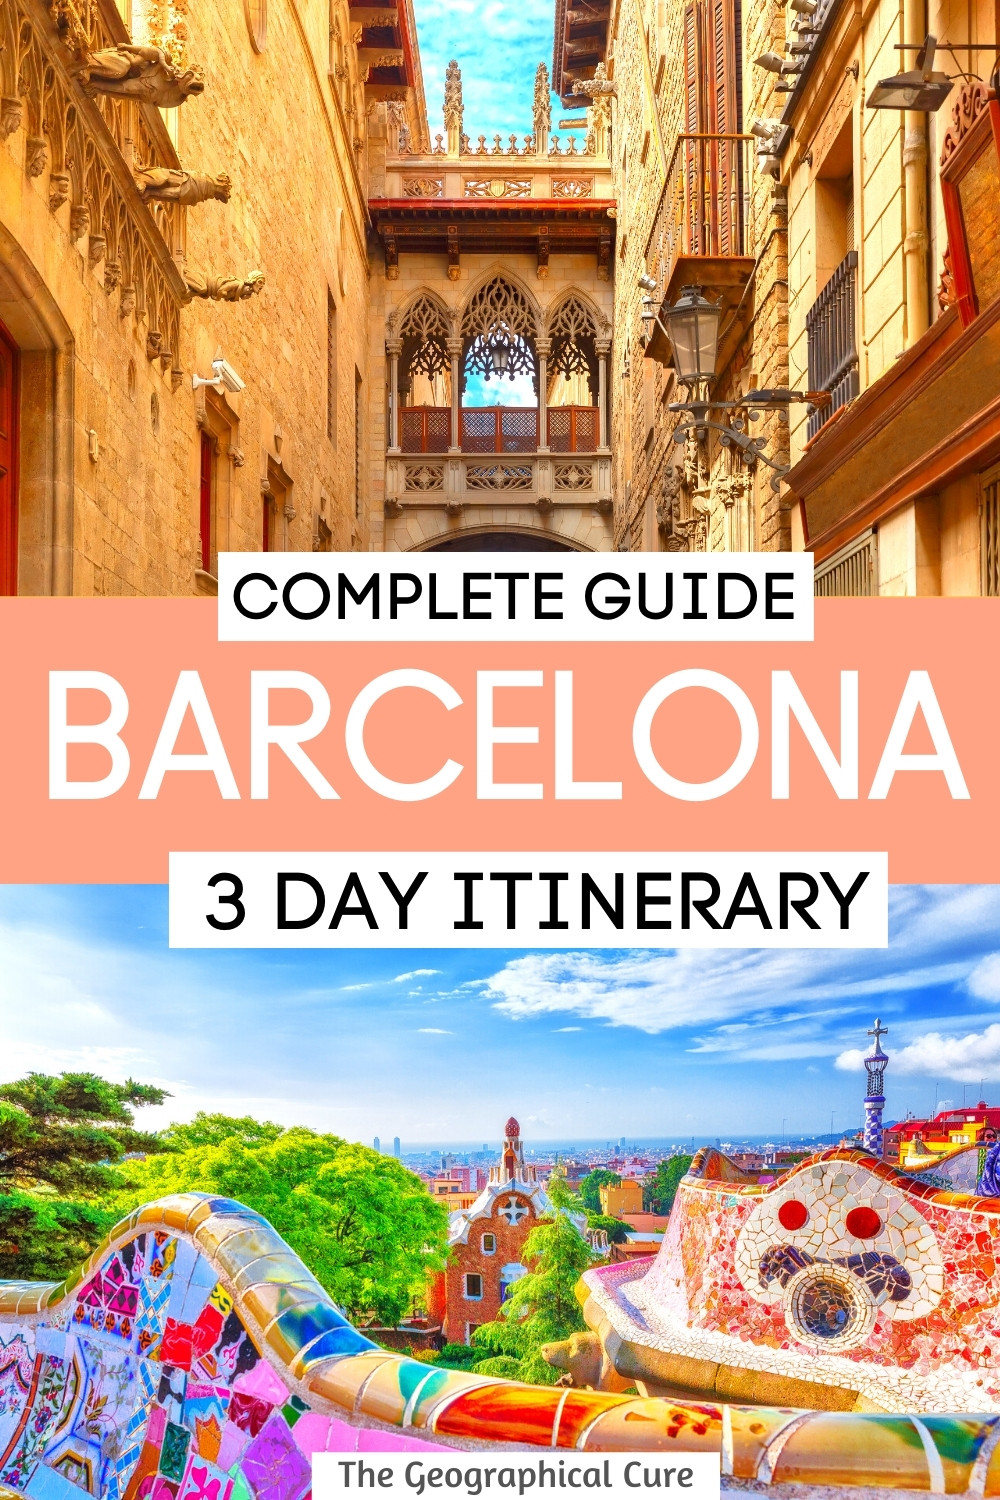 3 Day Itinerary for Barcelona Spain